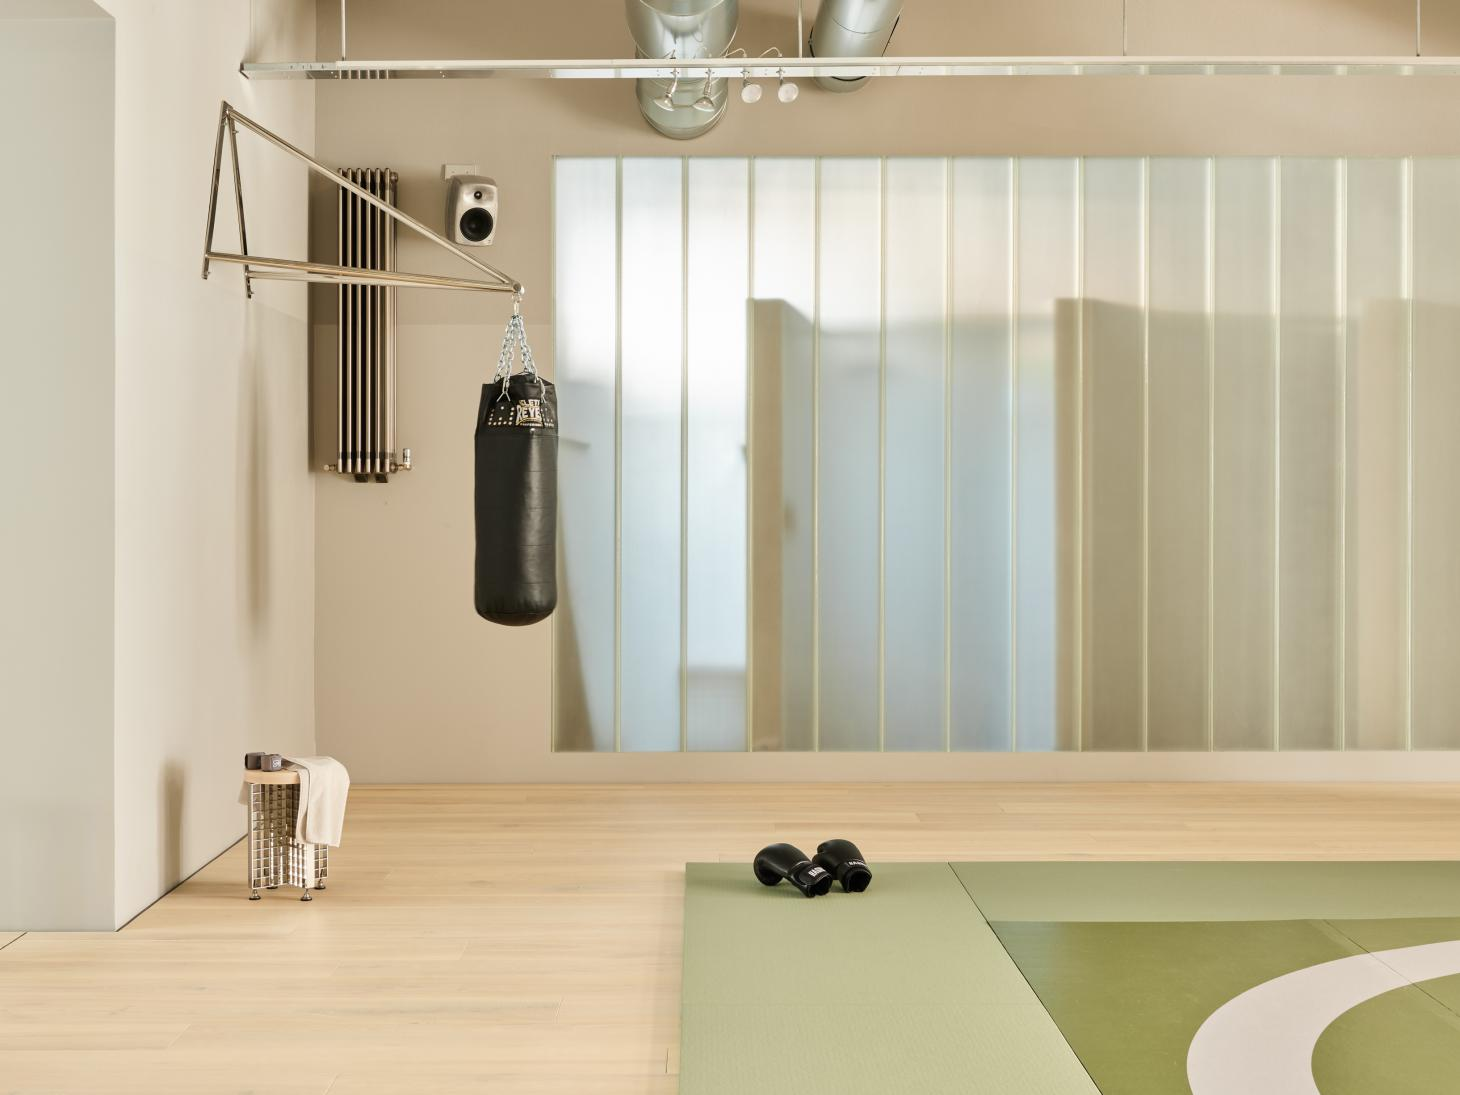 Workout area of Hagius gym in Berlin